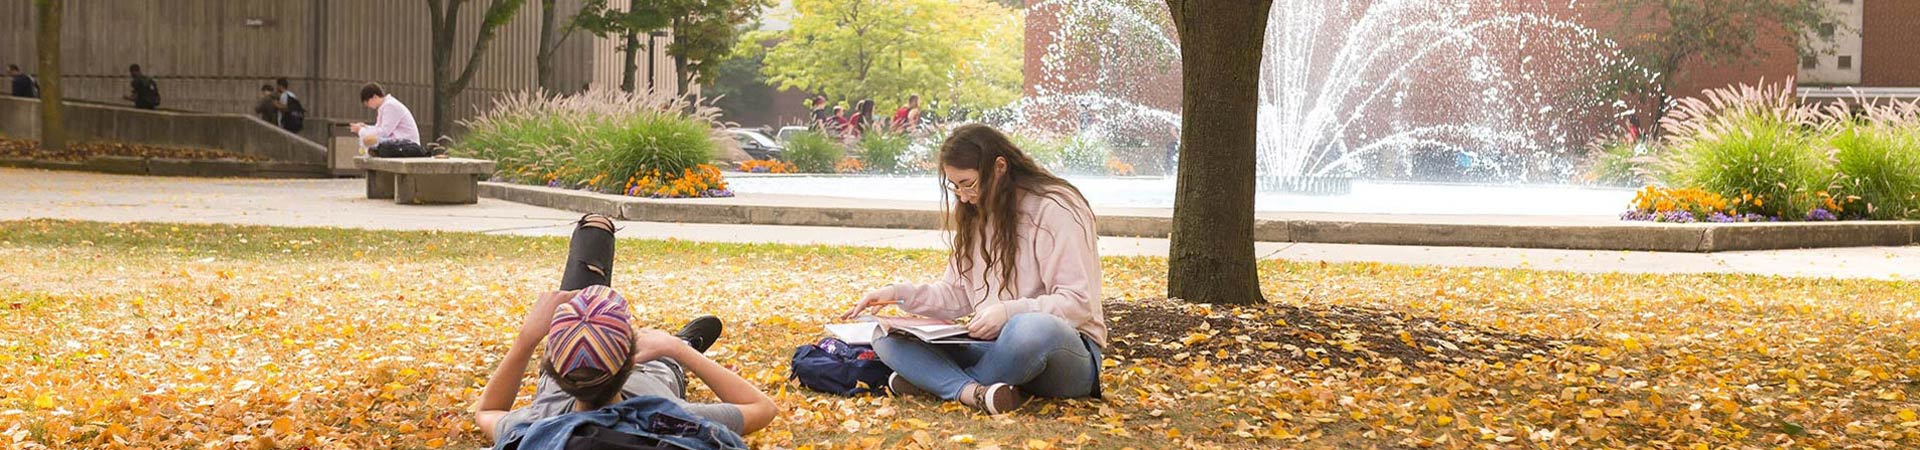 Students studying by fountain